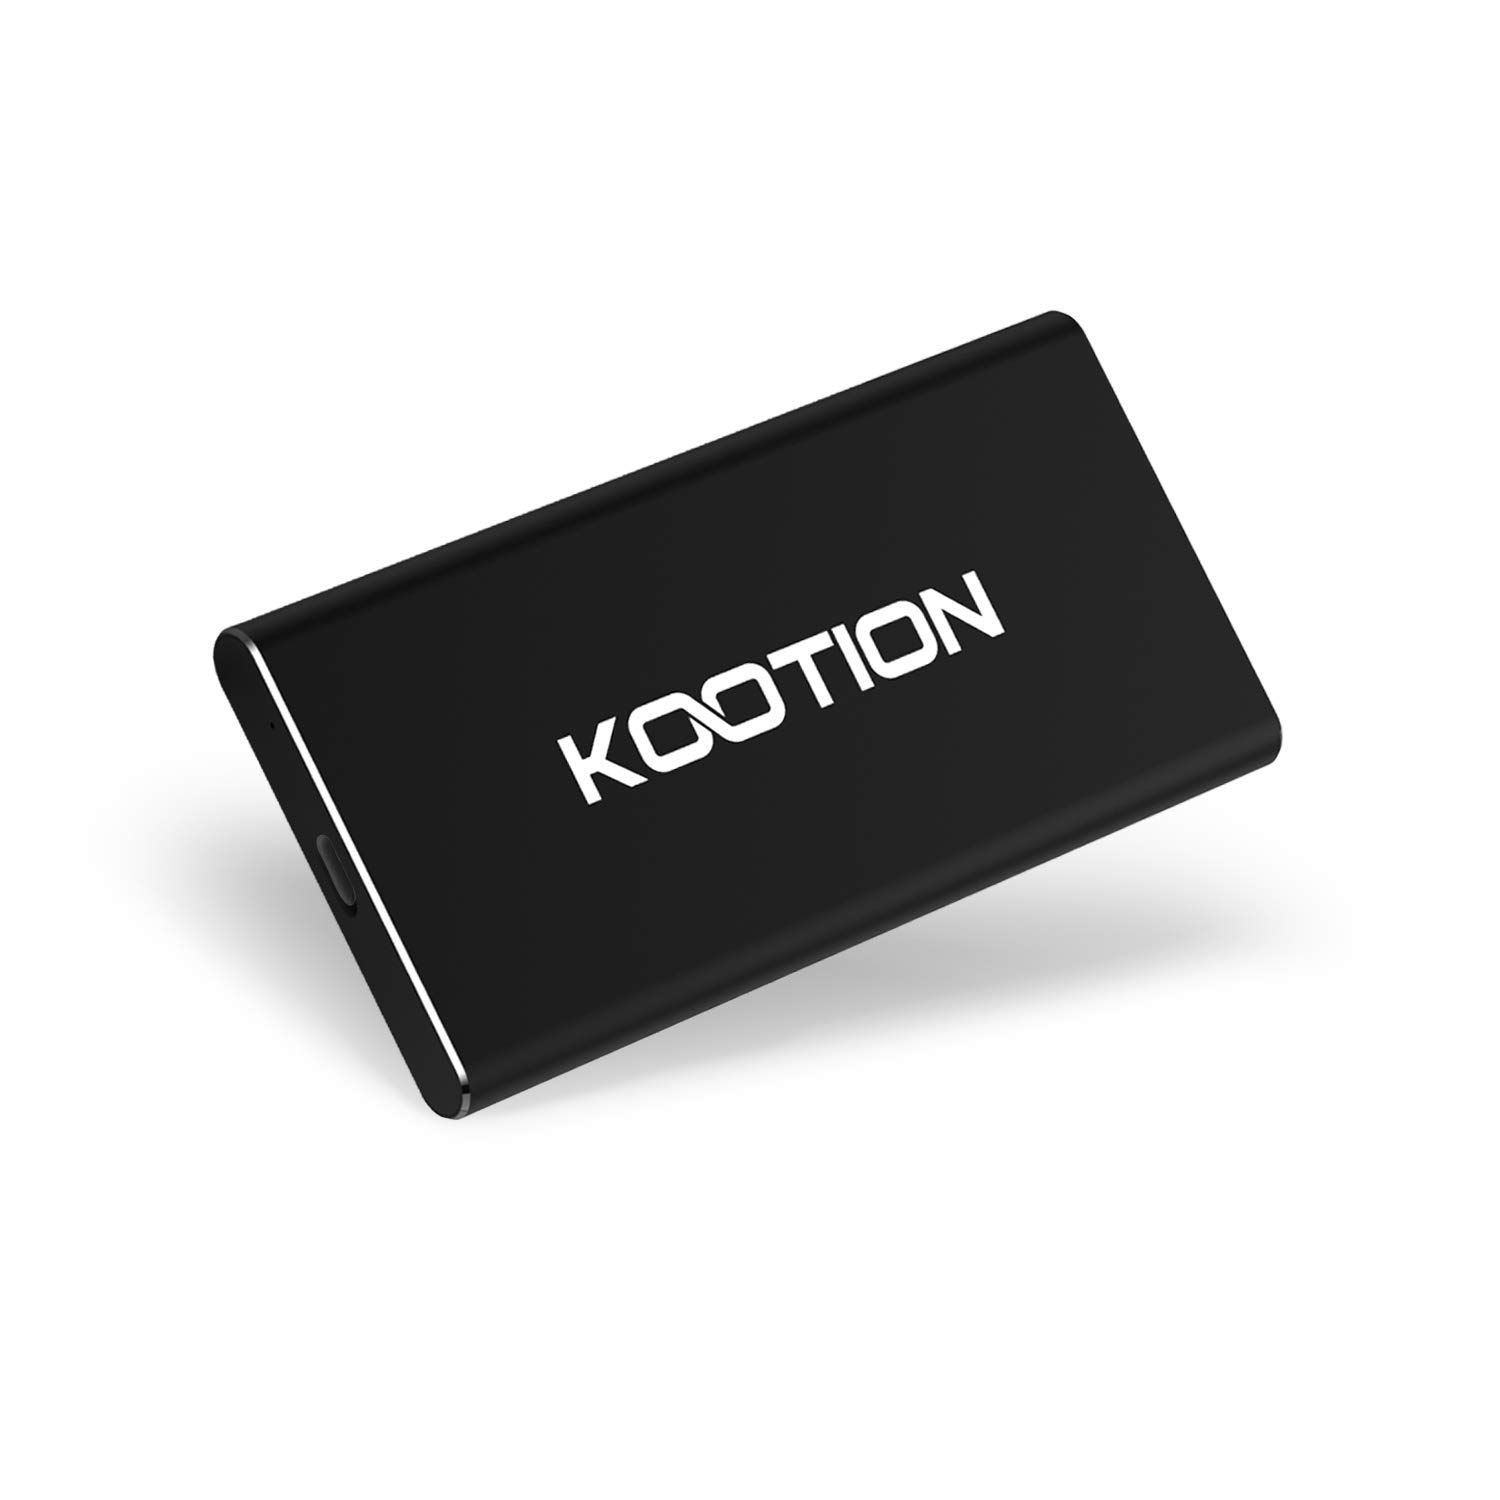 KOOTION 240GB Portable External SSD USB 3.0 Super-High Speed Read & Write up to 550MB/s&500MB/s External Storage Ultra-Slim Solid State Drive for PC, Desktop, Laptop, MacBook